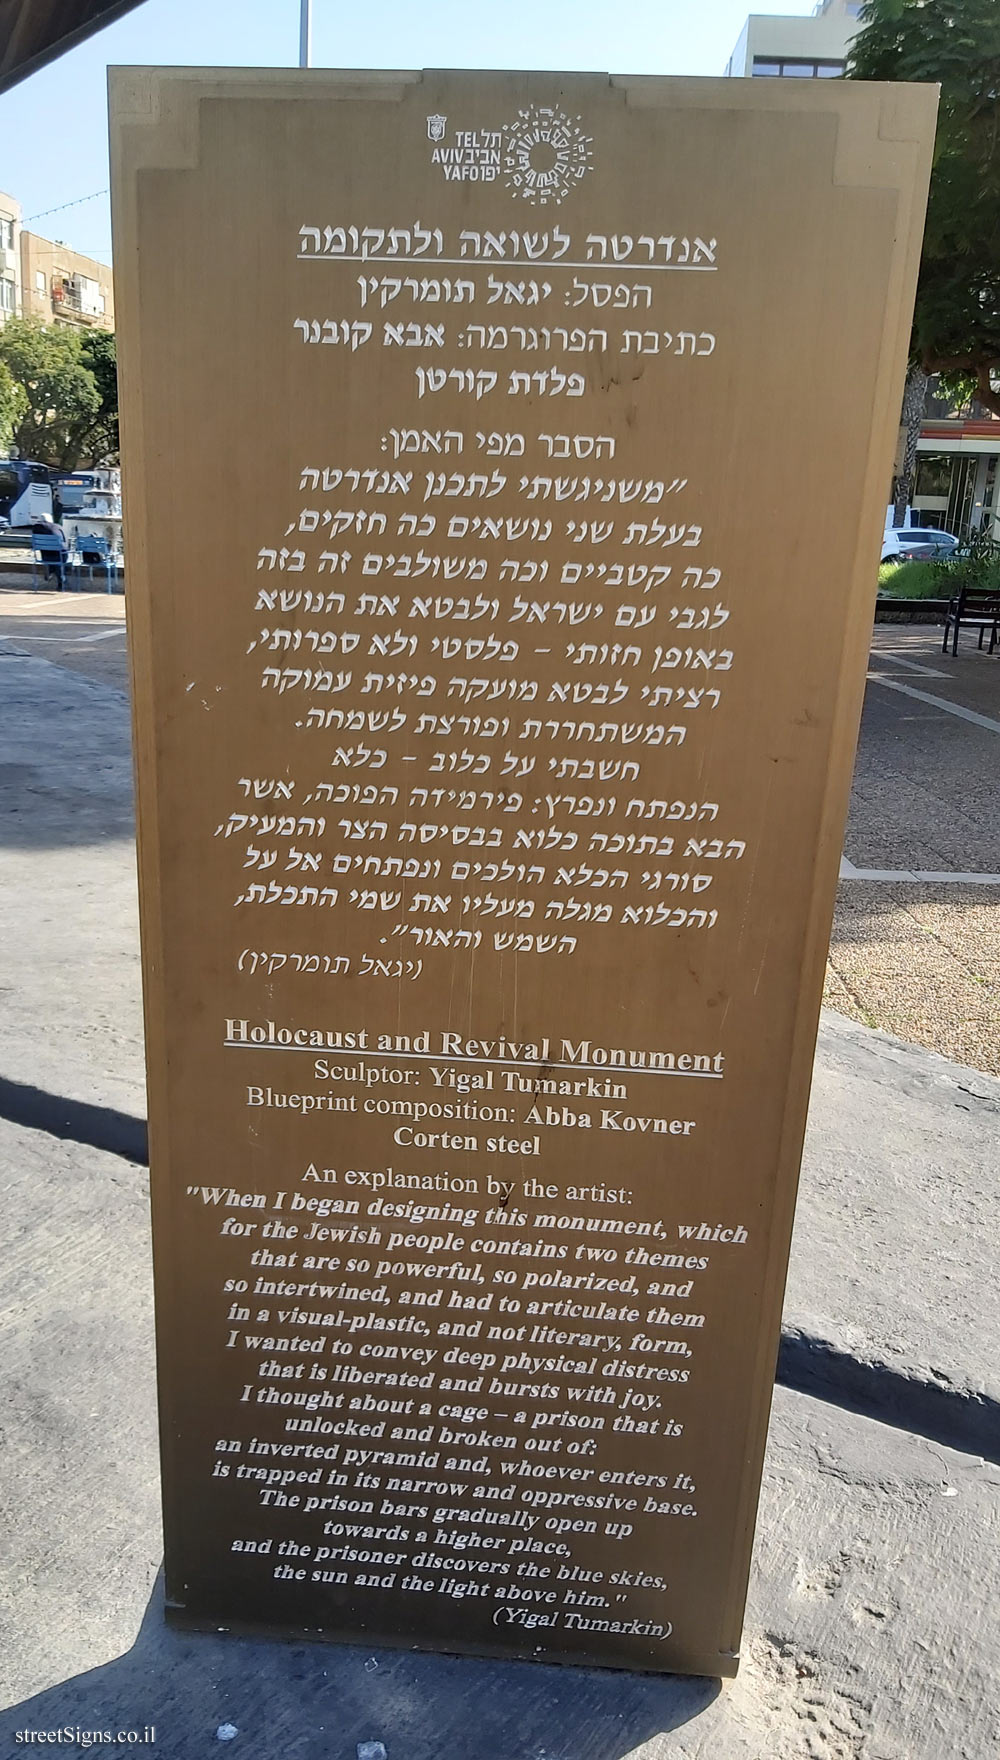 Tel Aviv - Holocaust and Revival Monument